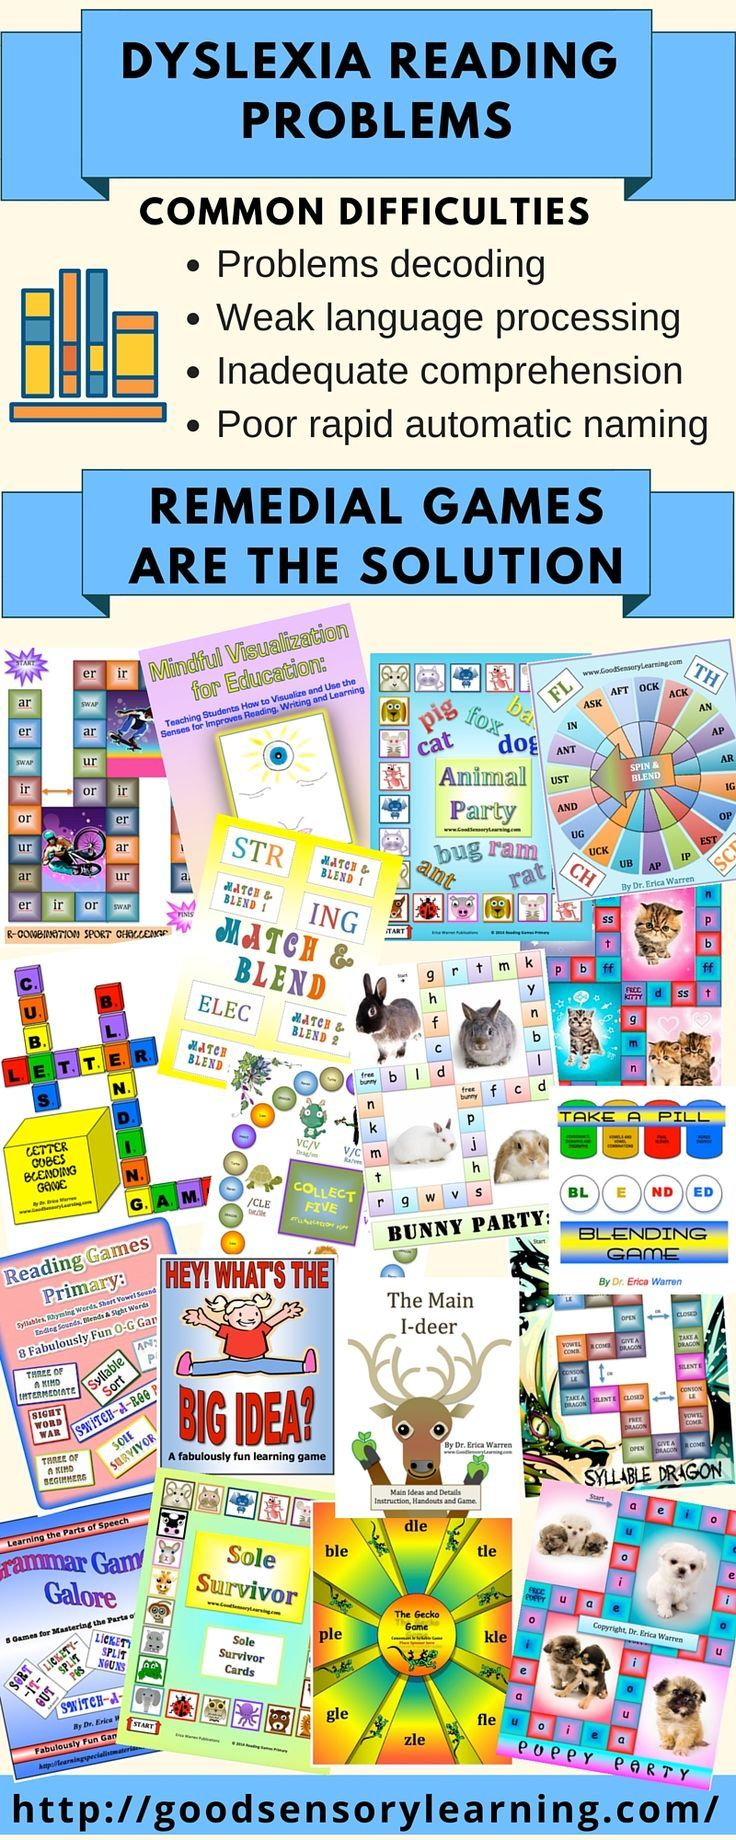 Worksheet Reading Strategies For Students With Dyslexia 10 best ideas about dyslexia strategies on pinterest struggling readers and activities